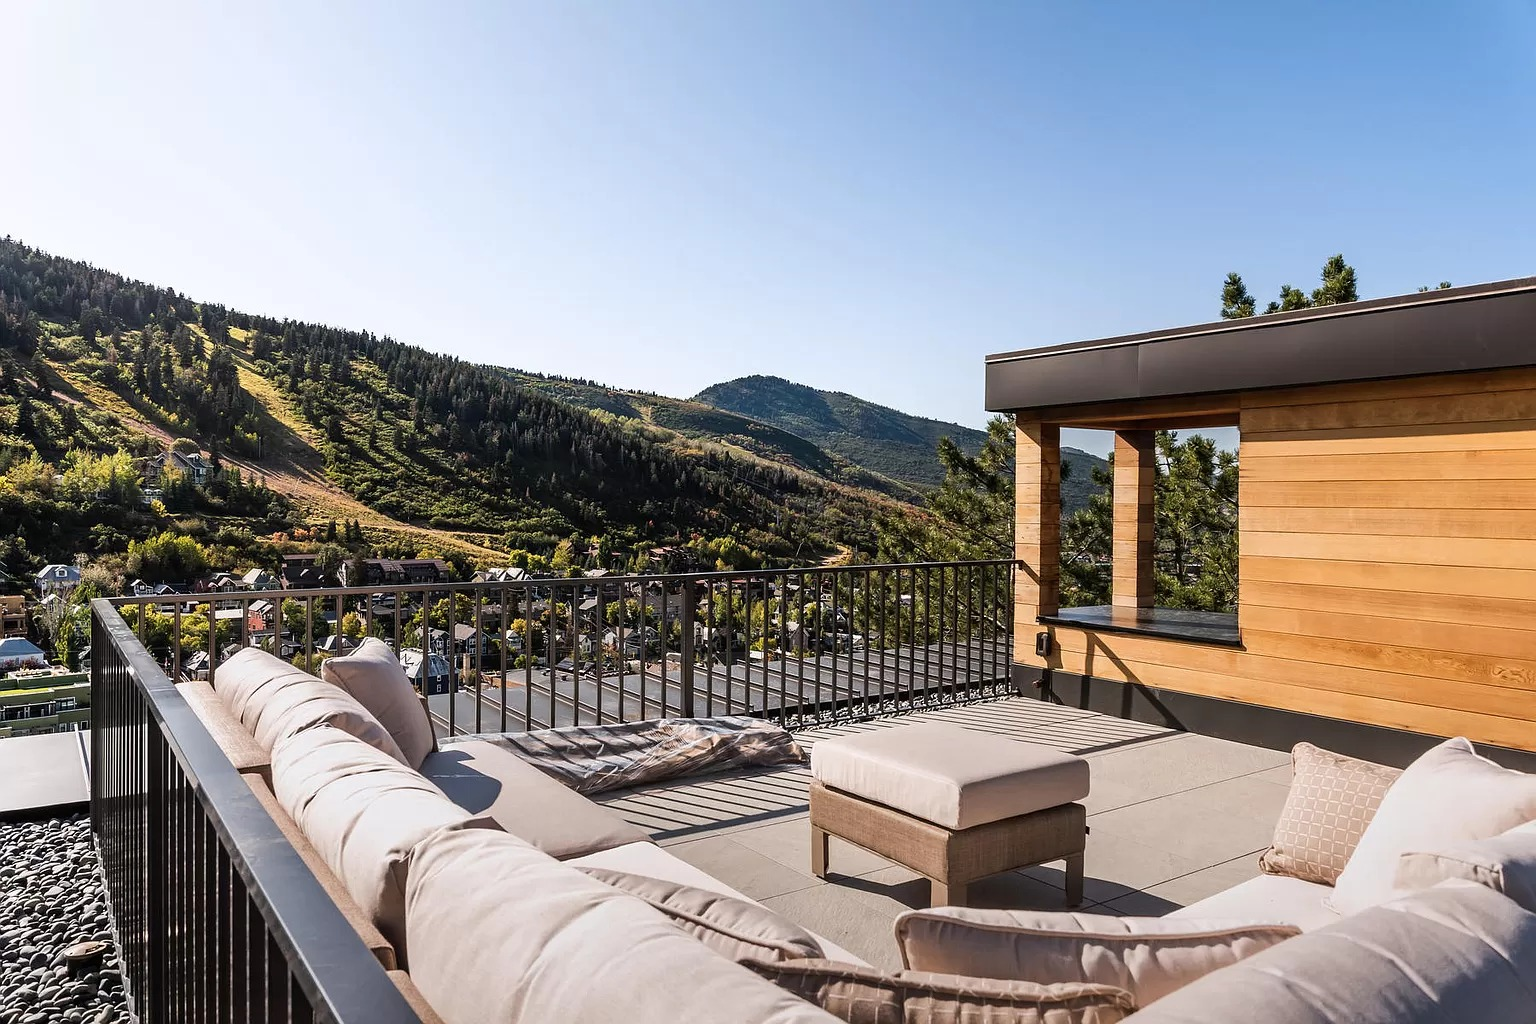 331 Mchenry Ave, Park City, UT 84060 - $7,850,000 home for sale, house images, photos and pics gallery